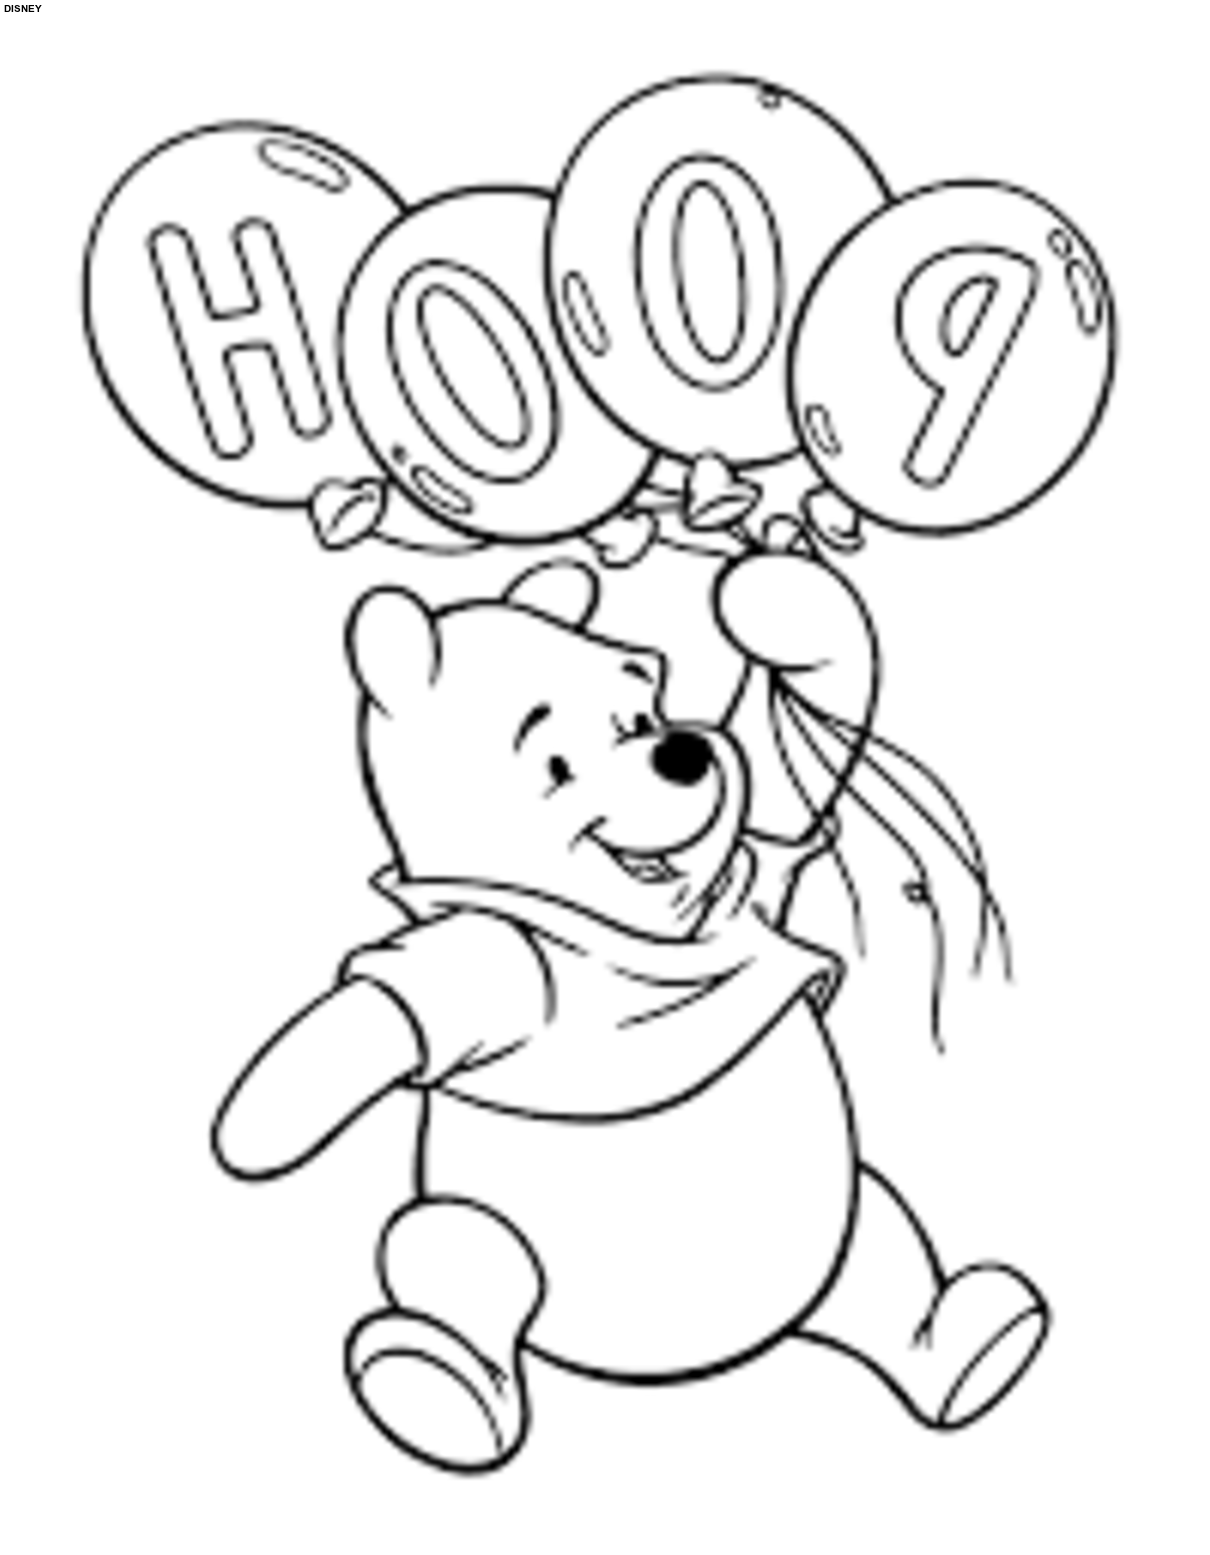 coloring pages of disney characters disney characters coloring pages getcoloringpagescom of disney characters coloring pages